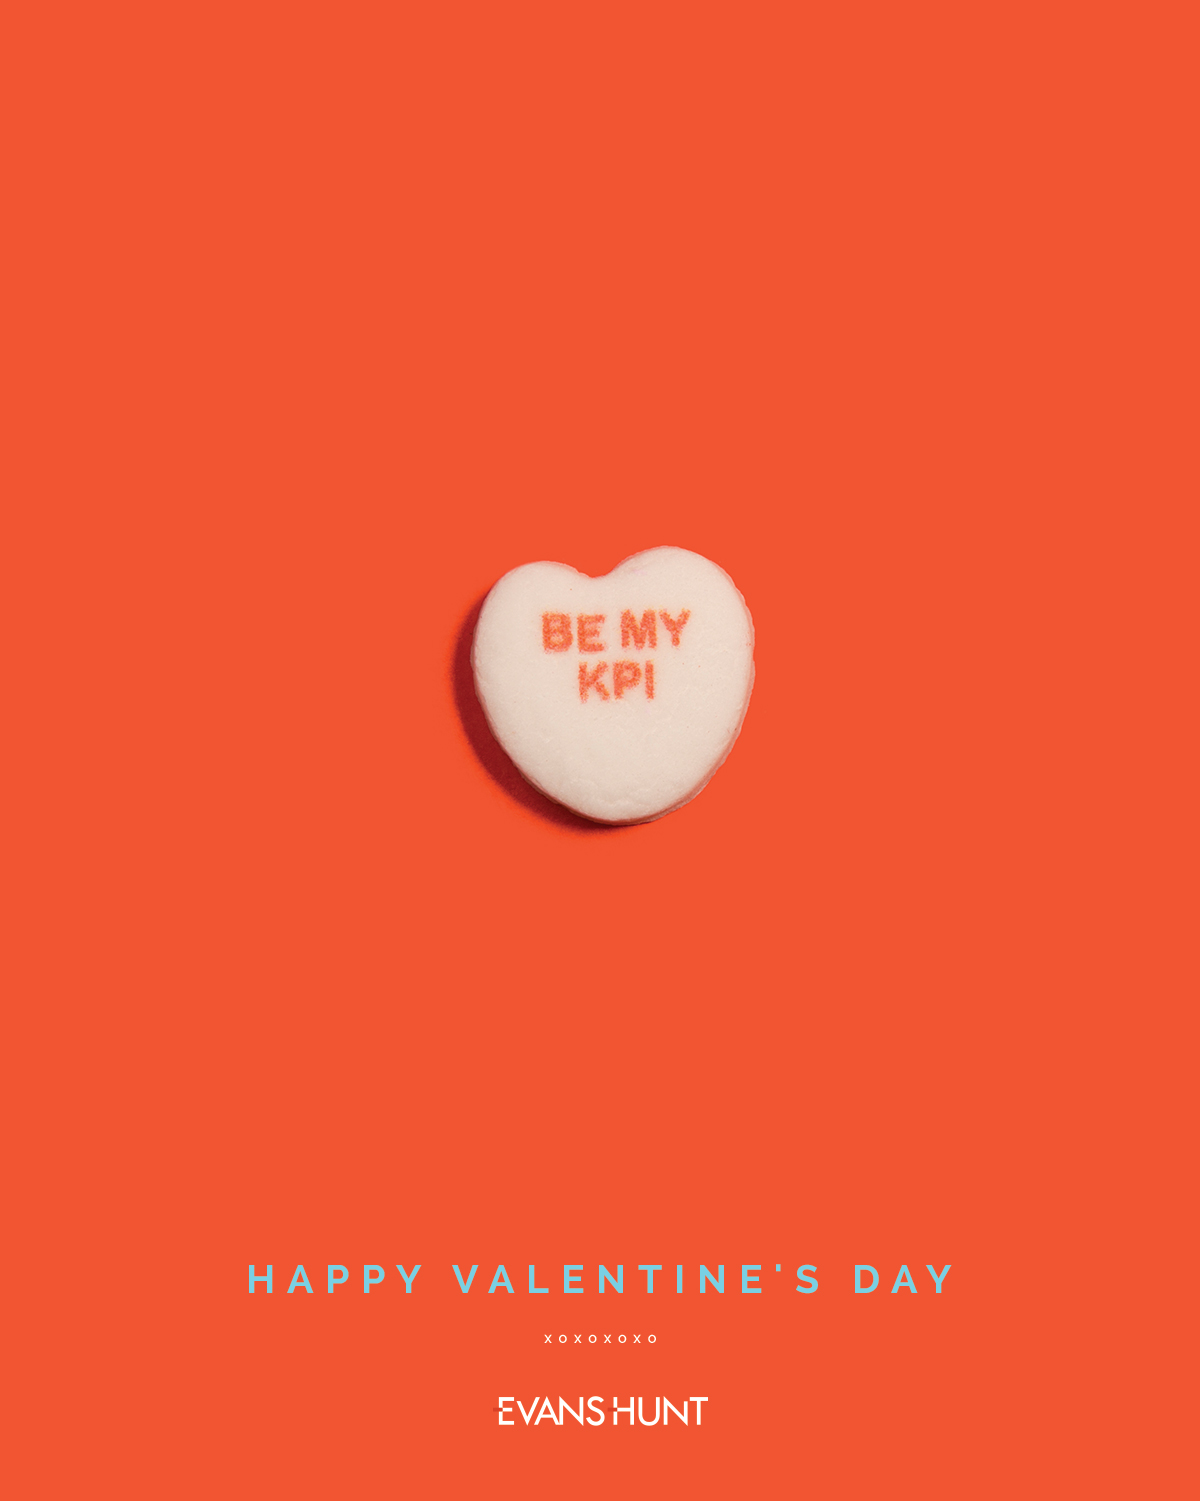 8 Valentines Day Marketing Campaigns That Arent Boring